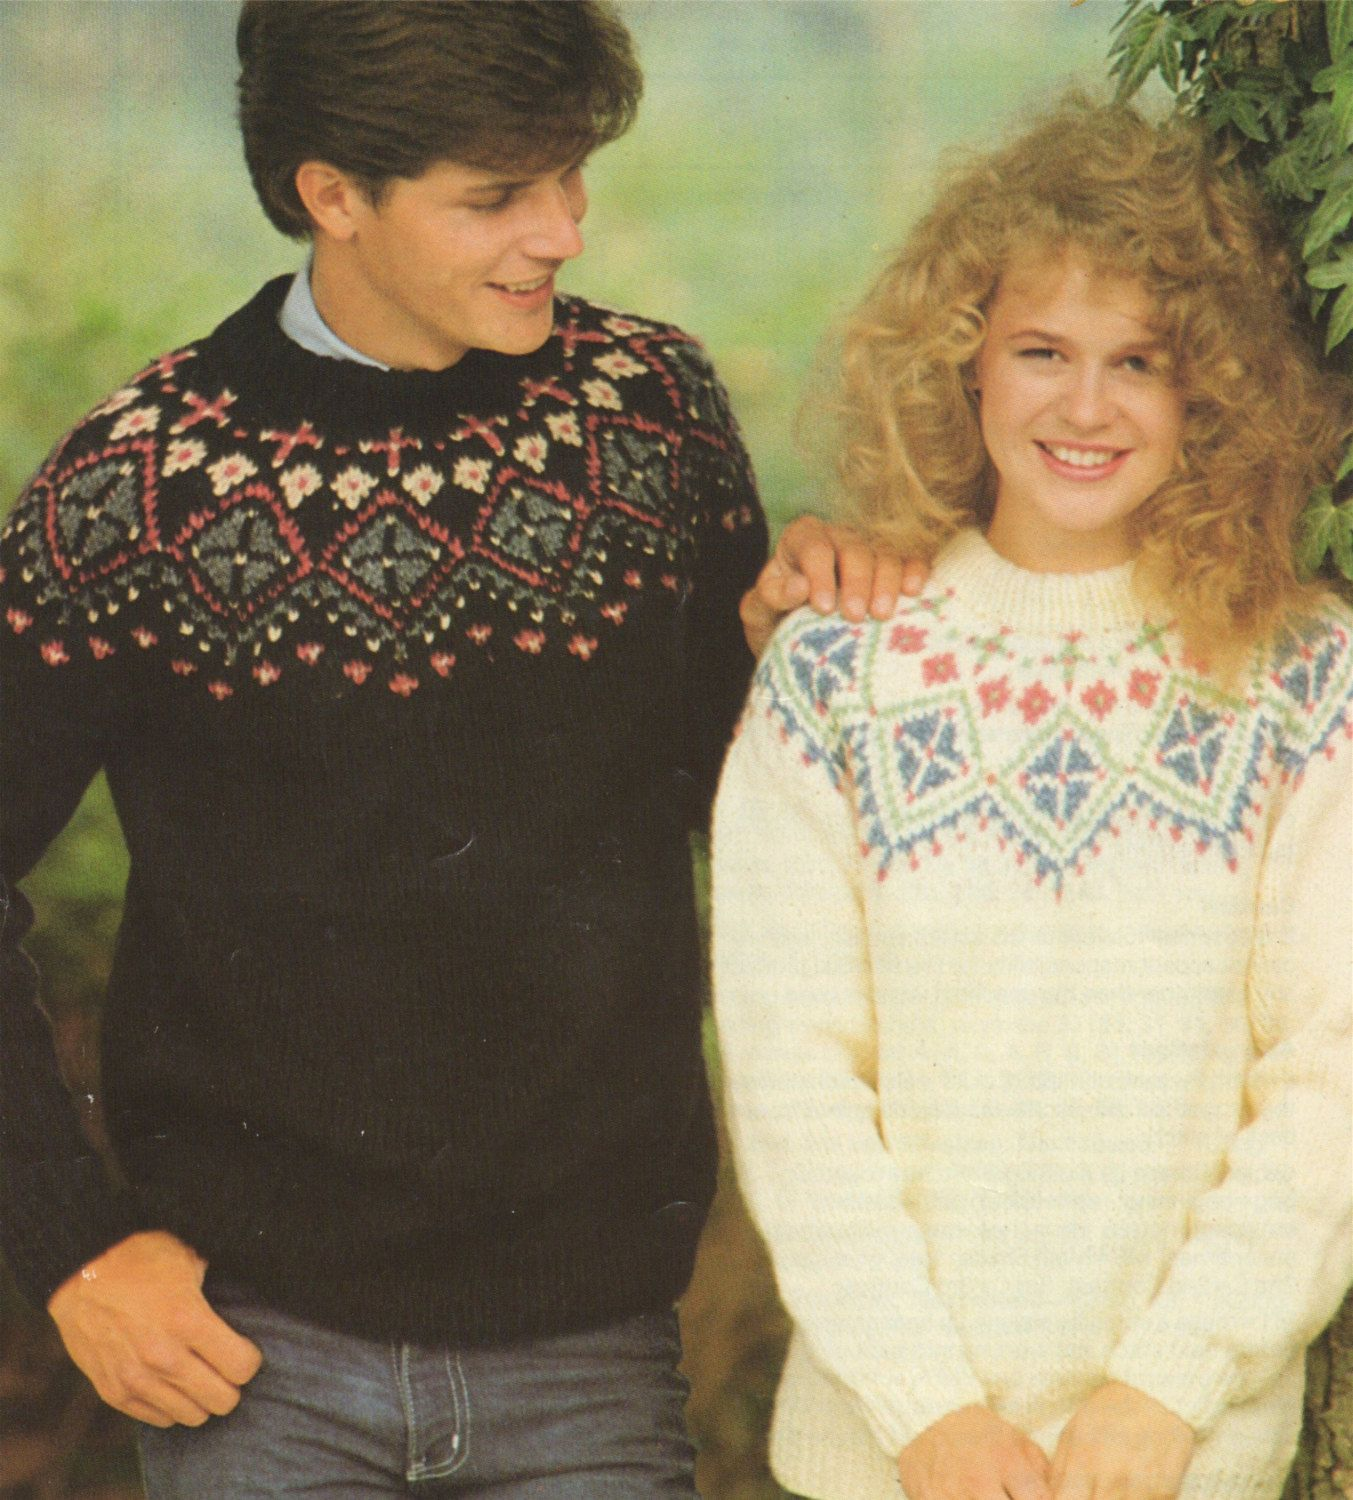 Womens and mens fair isle yoke sweater pdf knitting pattern womens and mens fair isle yoke sweater pdf knitting pattern fairisle jumper 32 34 36 38 40 42 44 inch chest instant download bankloansurffo Images